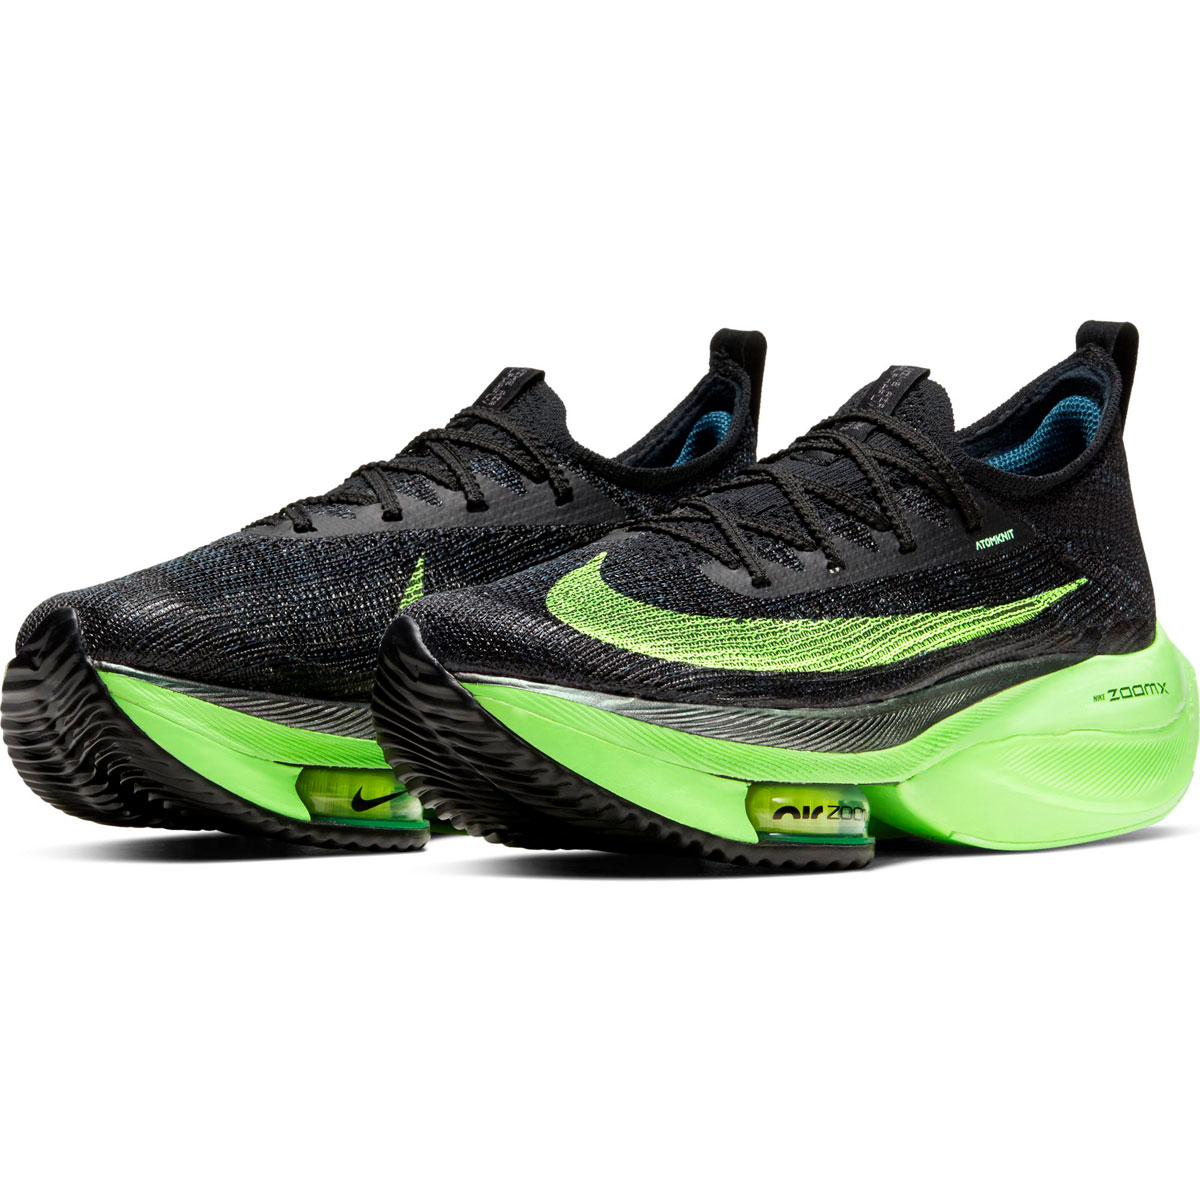 Women's Nike Air Zoom Alphafly Next% Running Shoe - Color: Black/Lime Blast - Size: 5 - Width: Regular, Black/Lime Blast, large, image 4